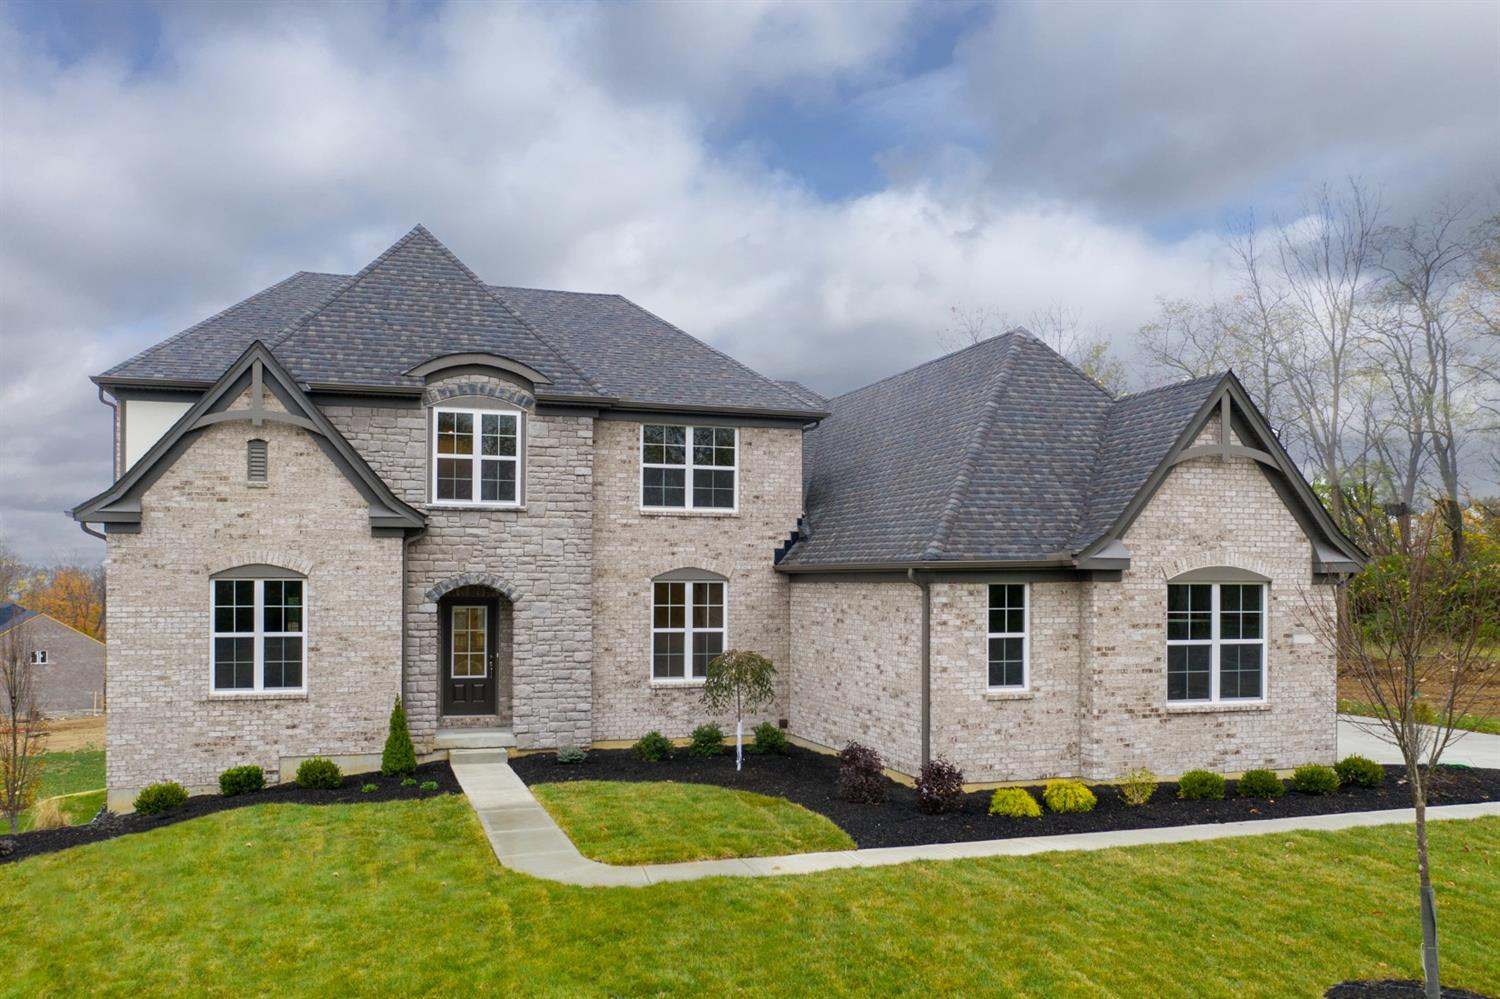 Photo of 8841 Oakcrest Way, West Chester, OH 45069